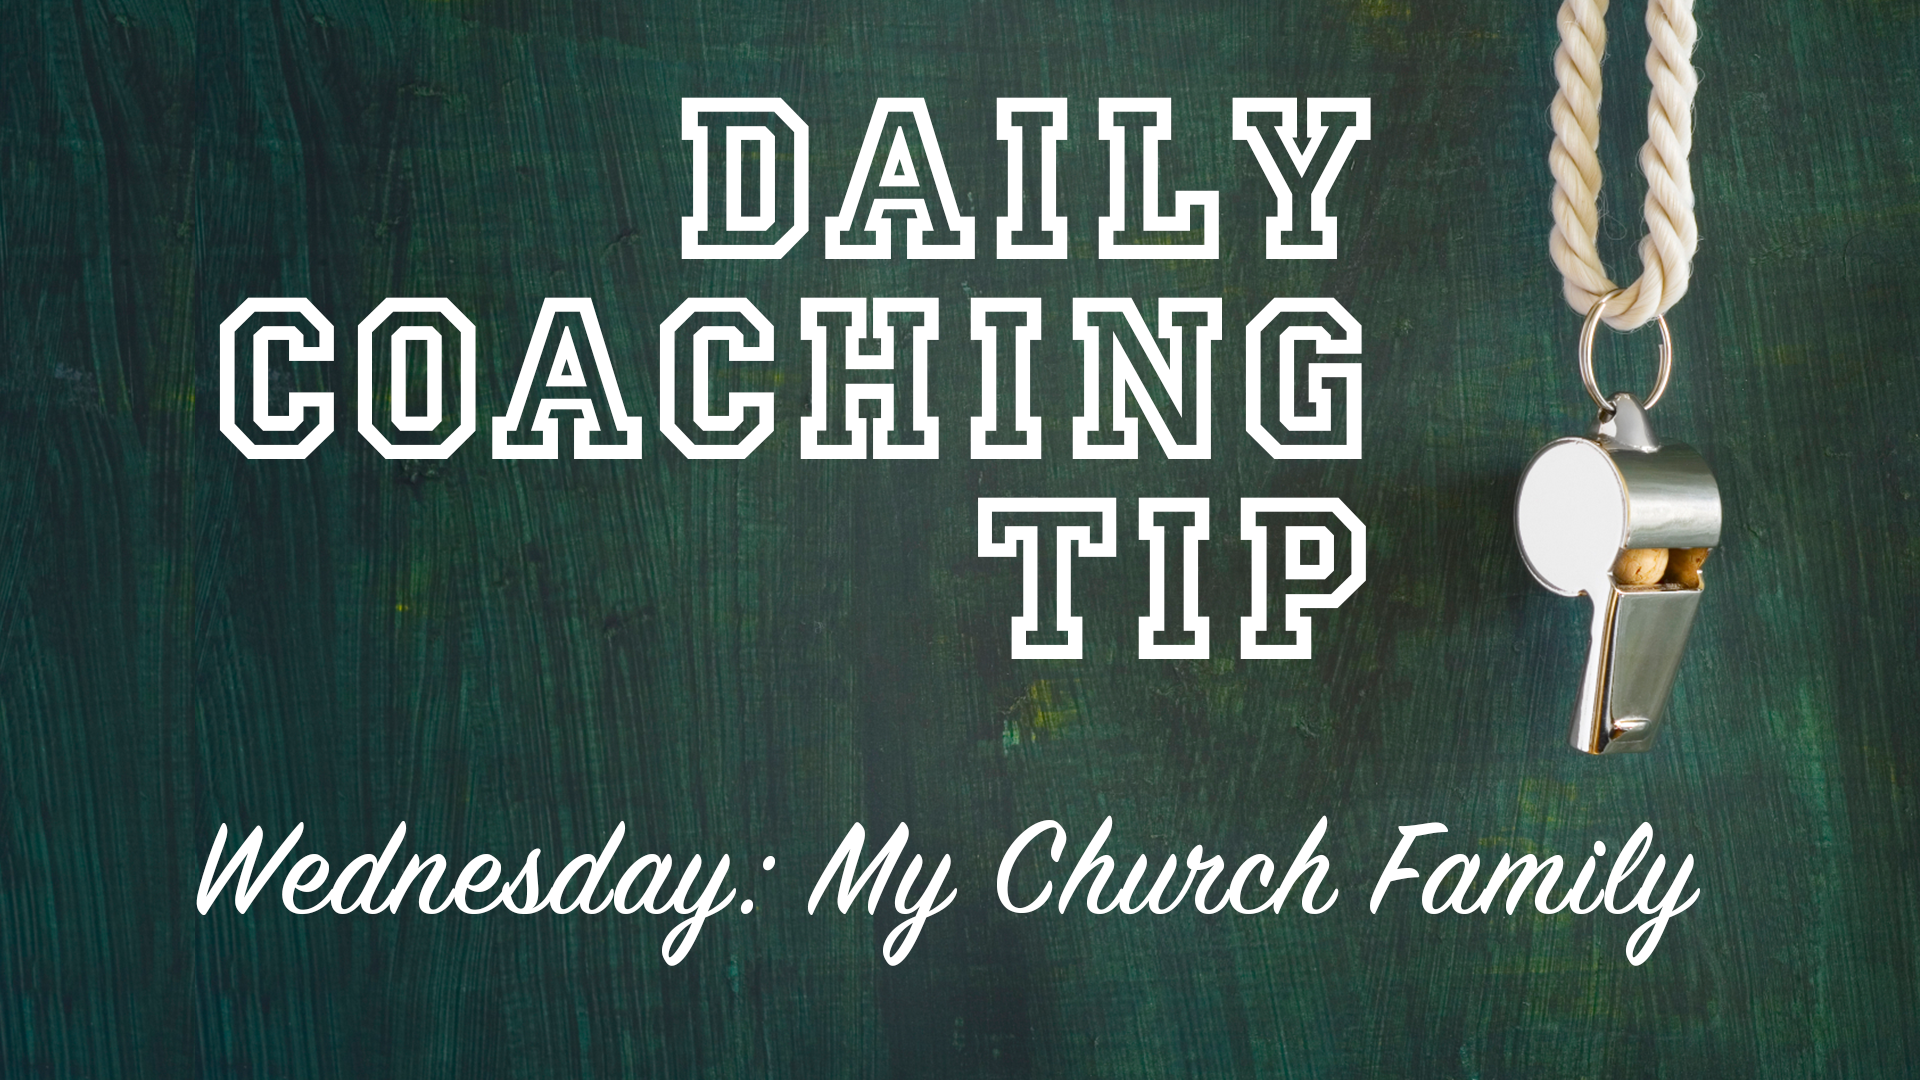 Daily Coaching Tip, Wednesday, May 25, 2016